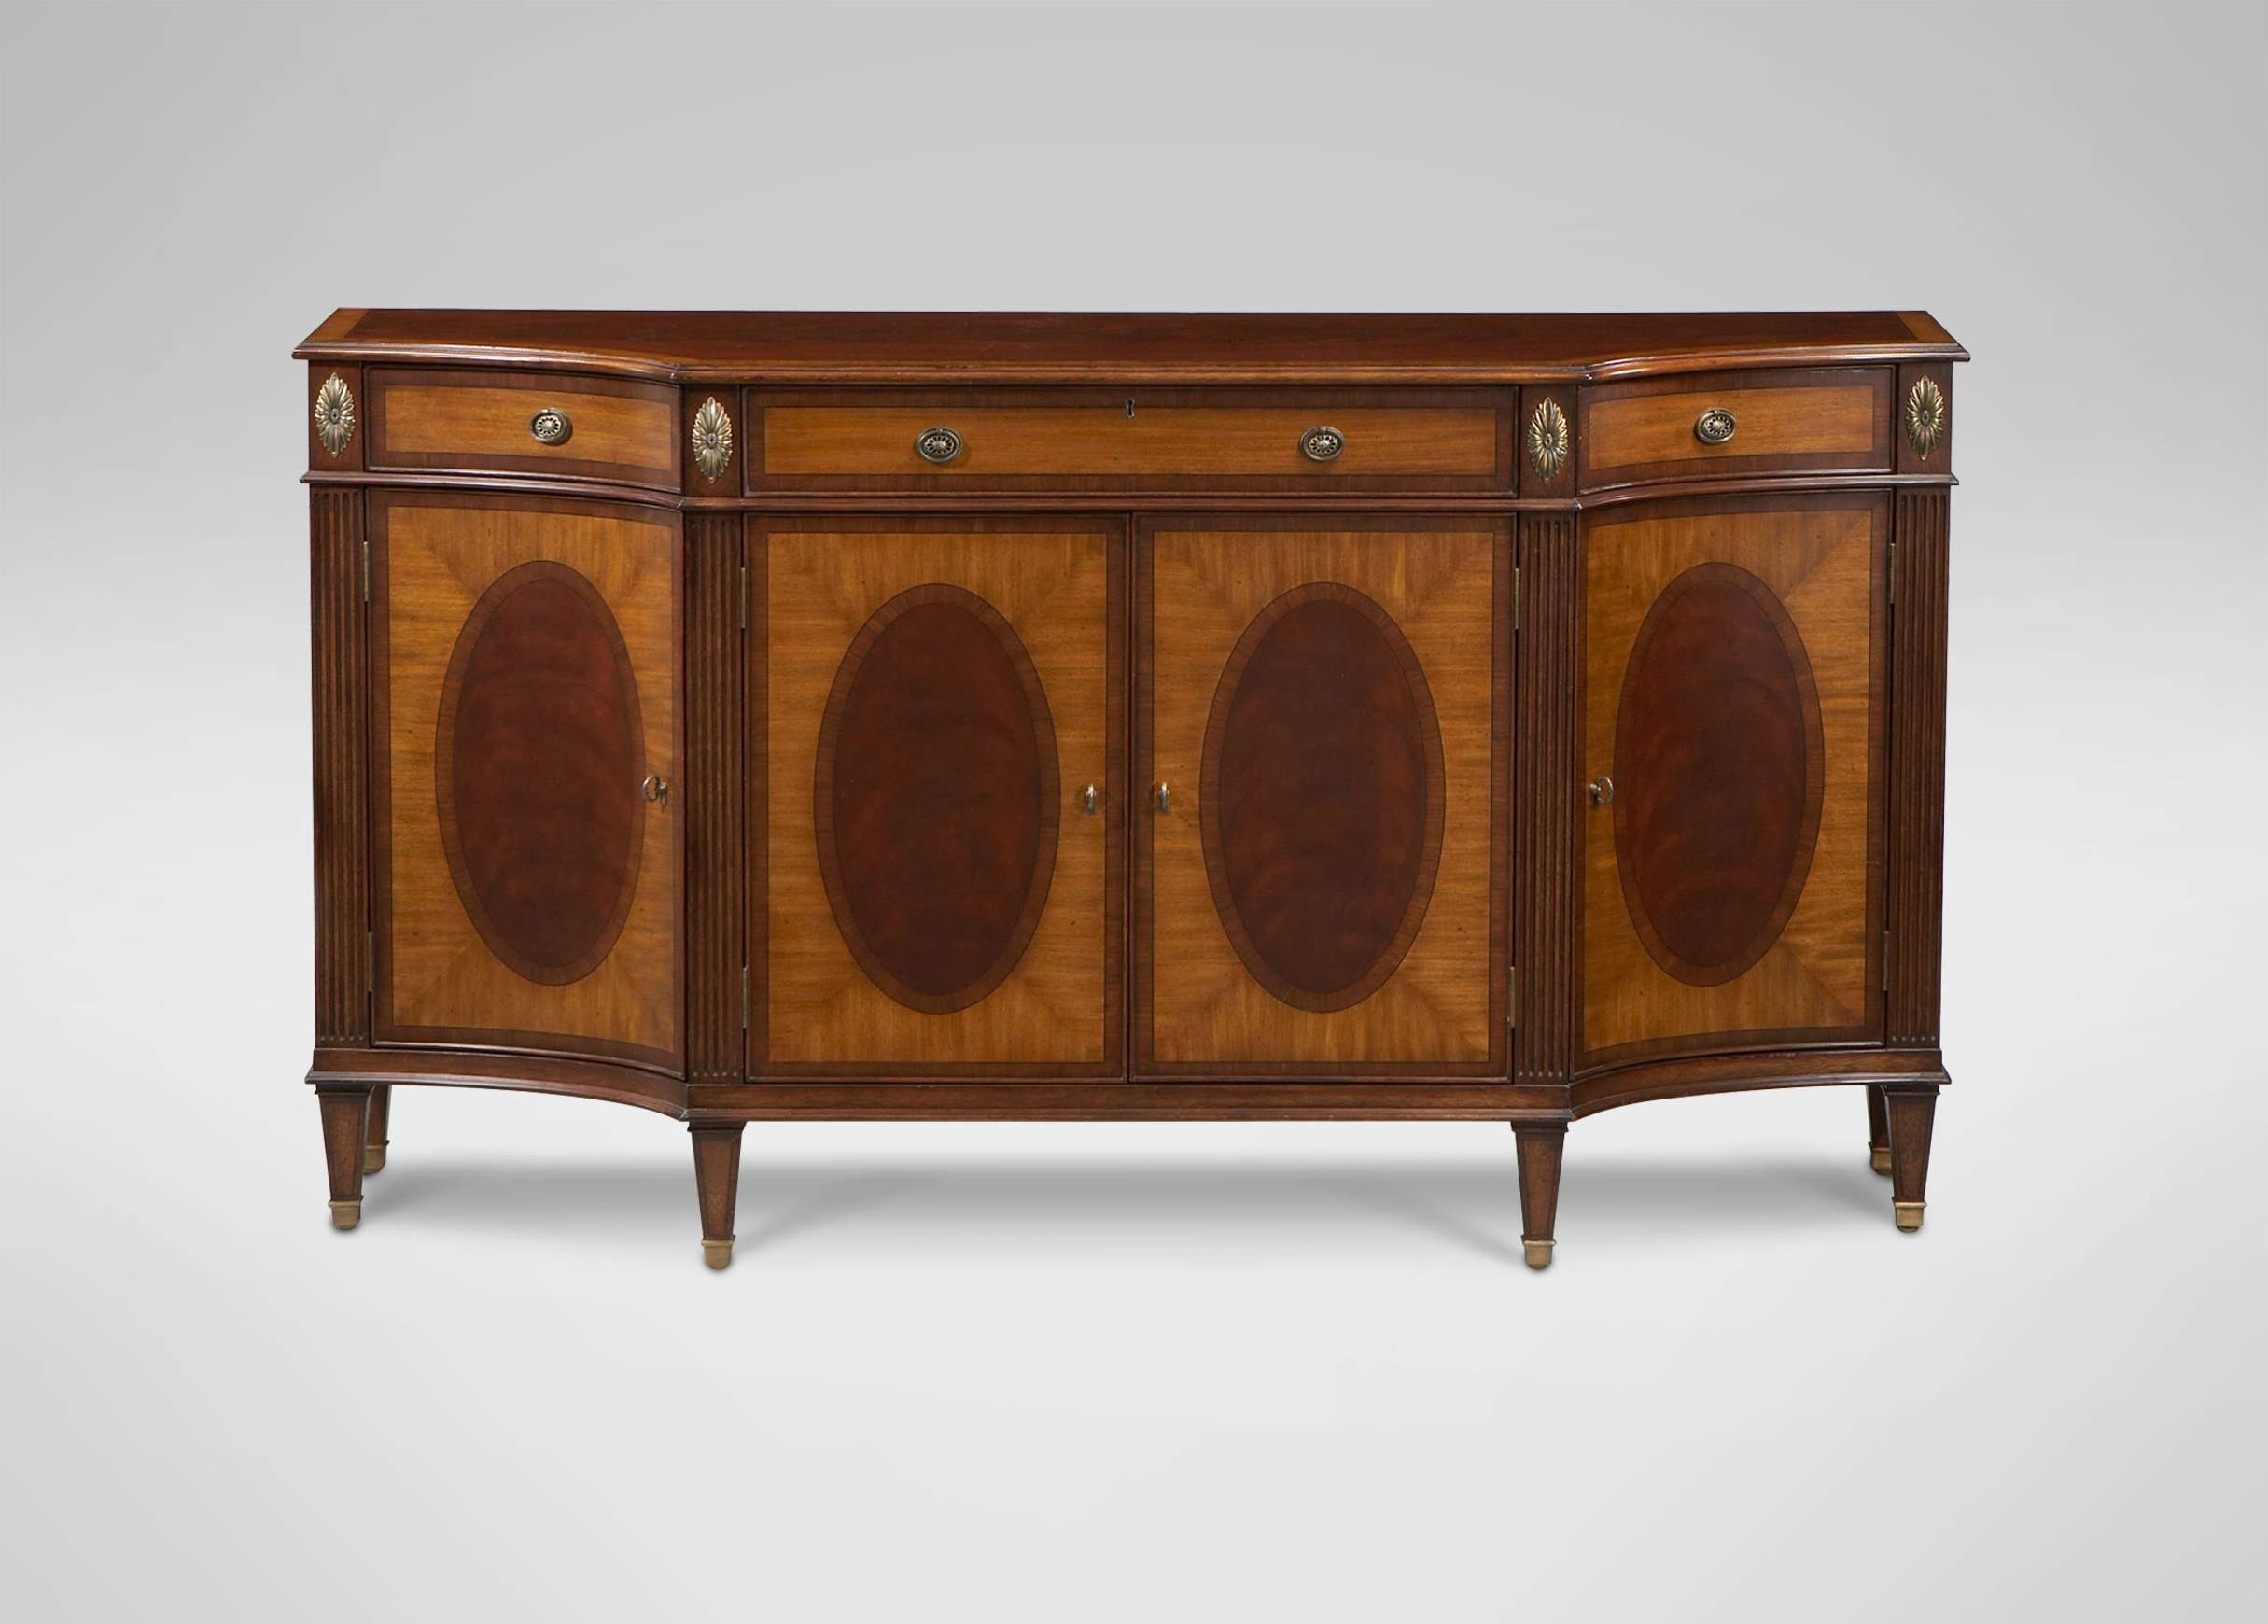 Easton Sideboard | Buffets, Sideboards & Servers With Regard To Ethan Allen Sideboards (Gallery 1 of 20)